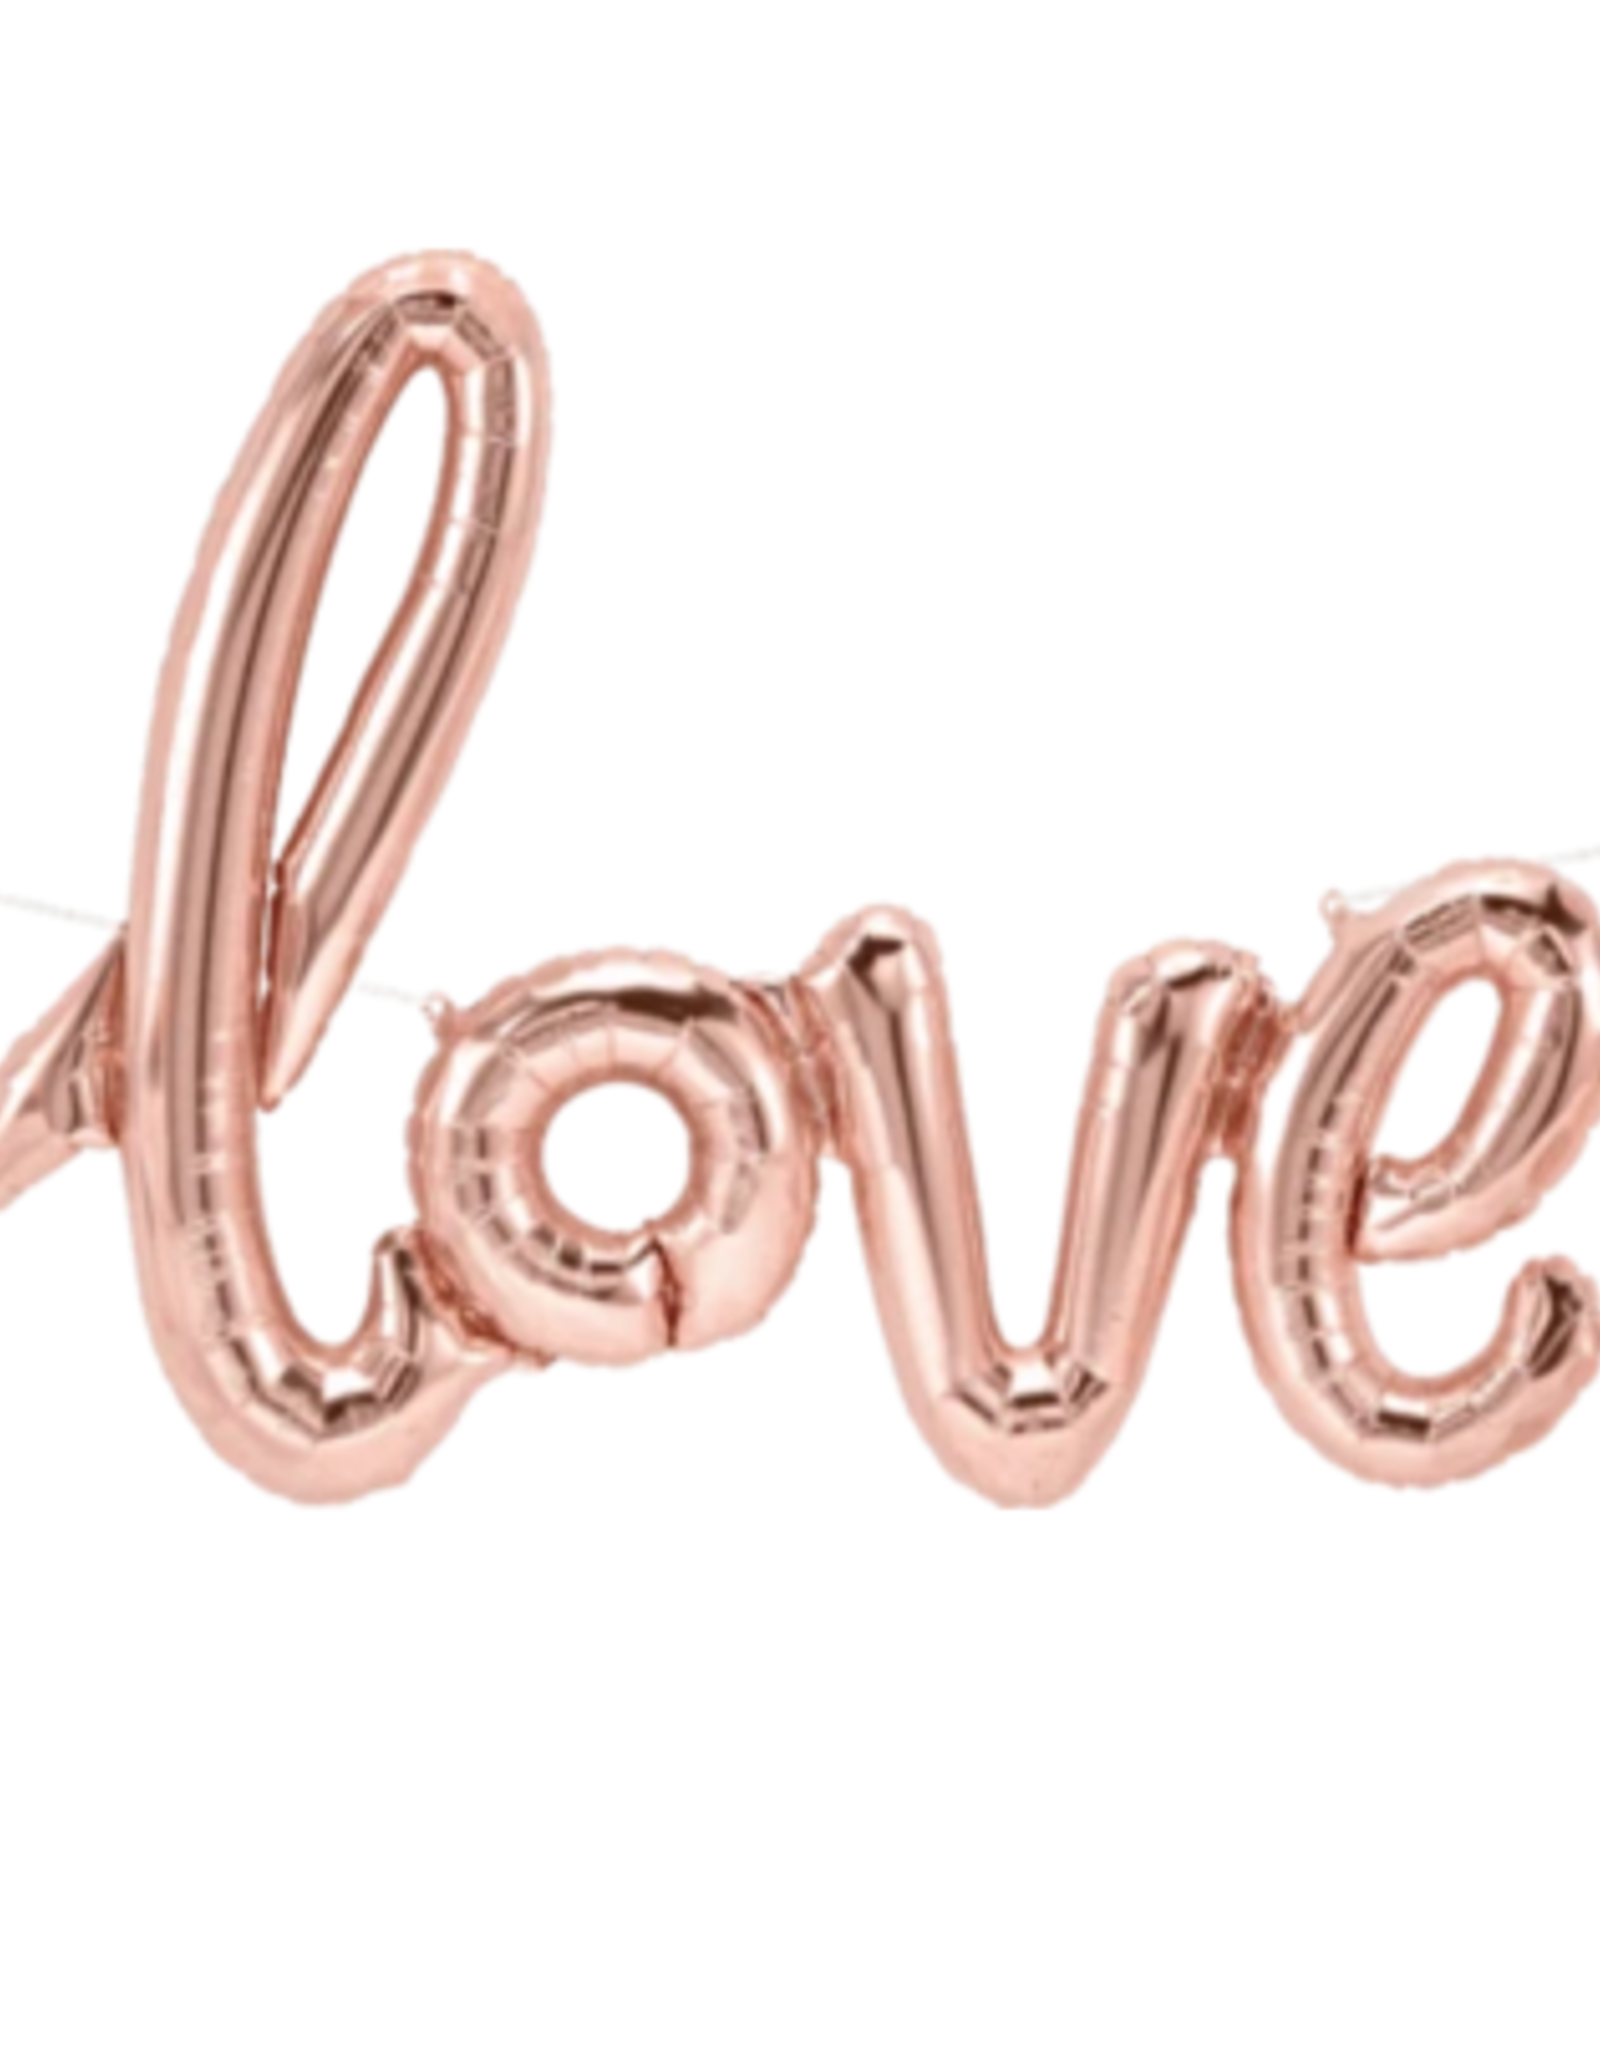 Balloon - LOVE Pink Script Air Filled 40""